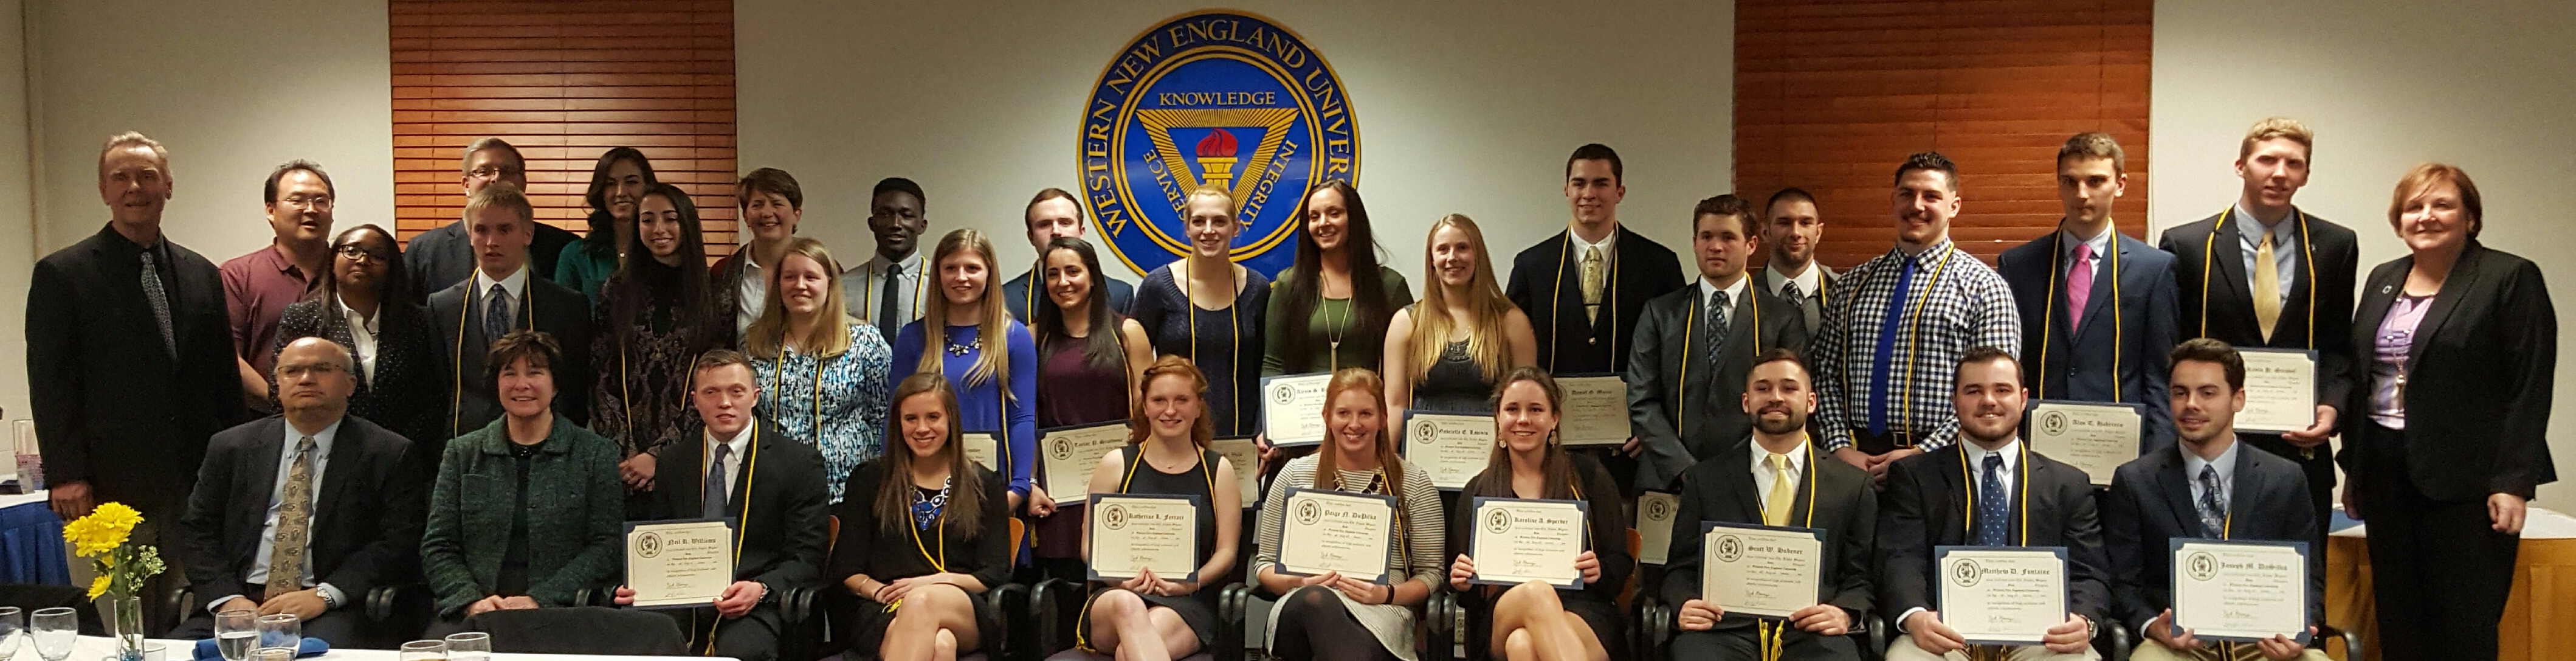 1462286473 chi alpha sigma   national college athlete honor society